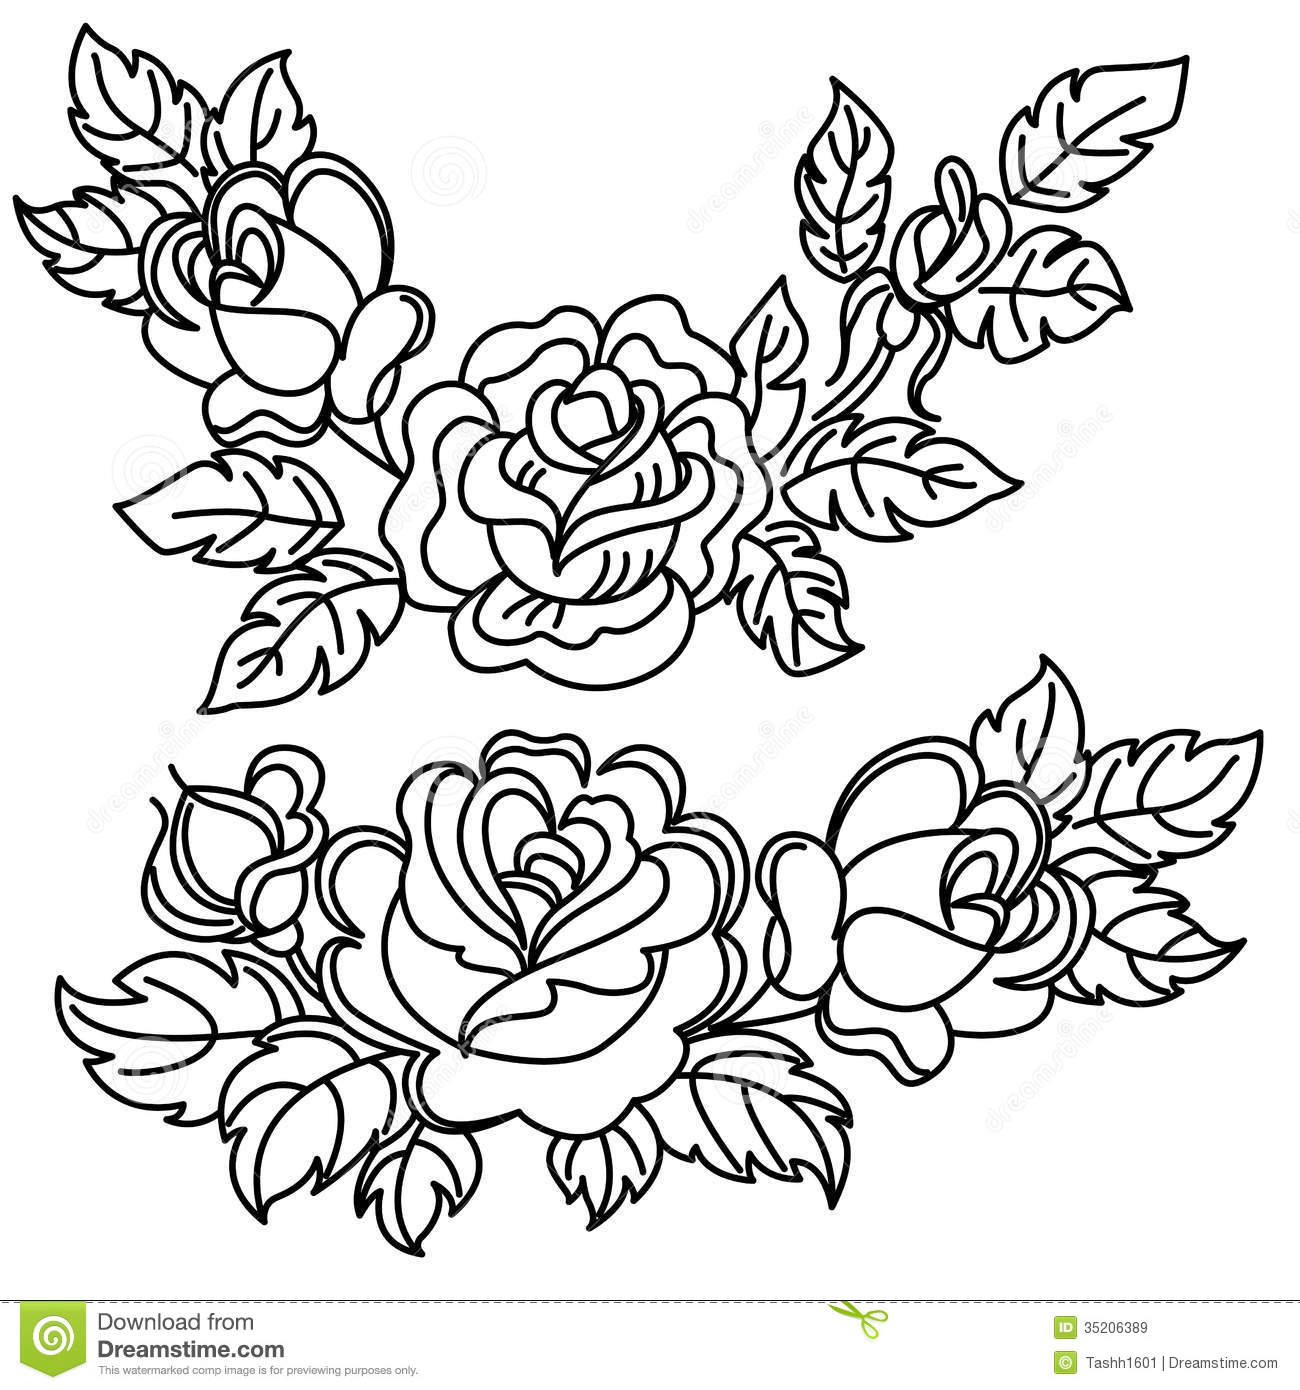 Flower Leaf Line Drawing : Roses stock illustration of ornaments curve